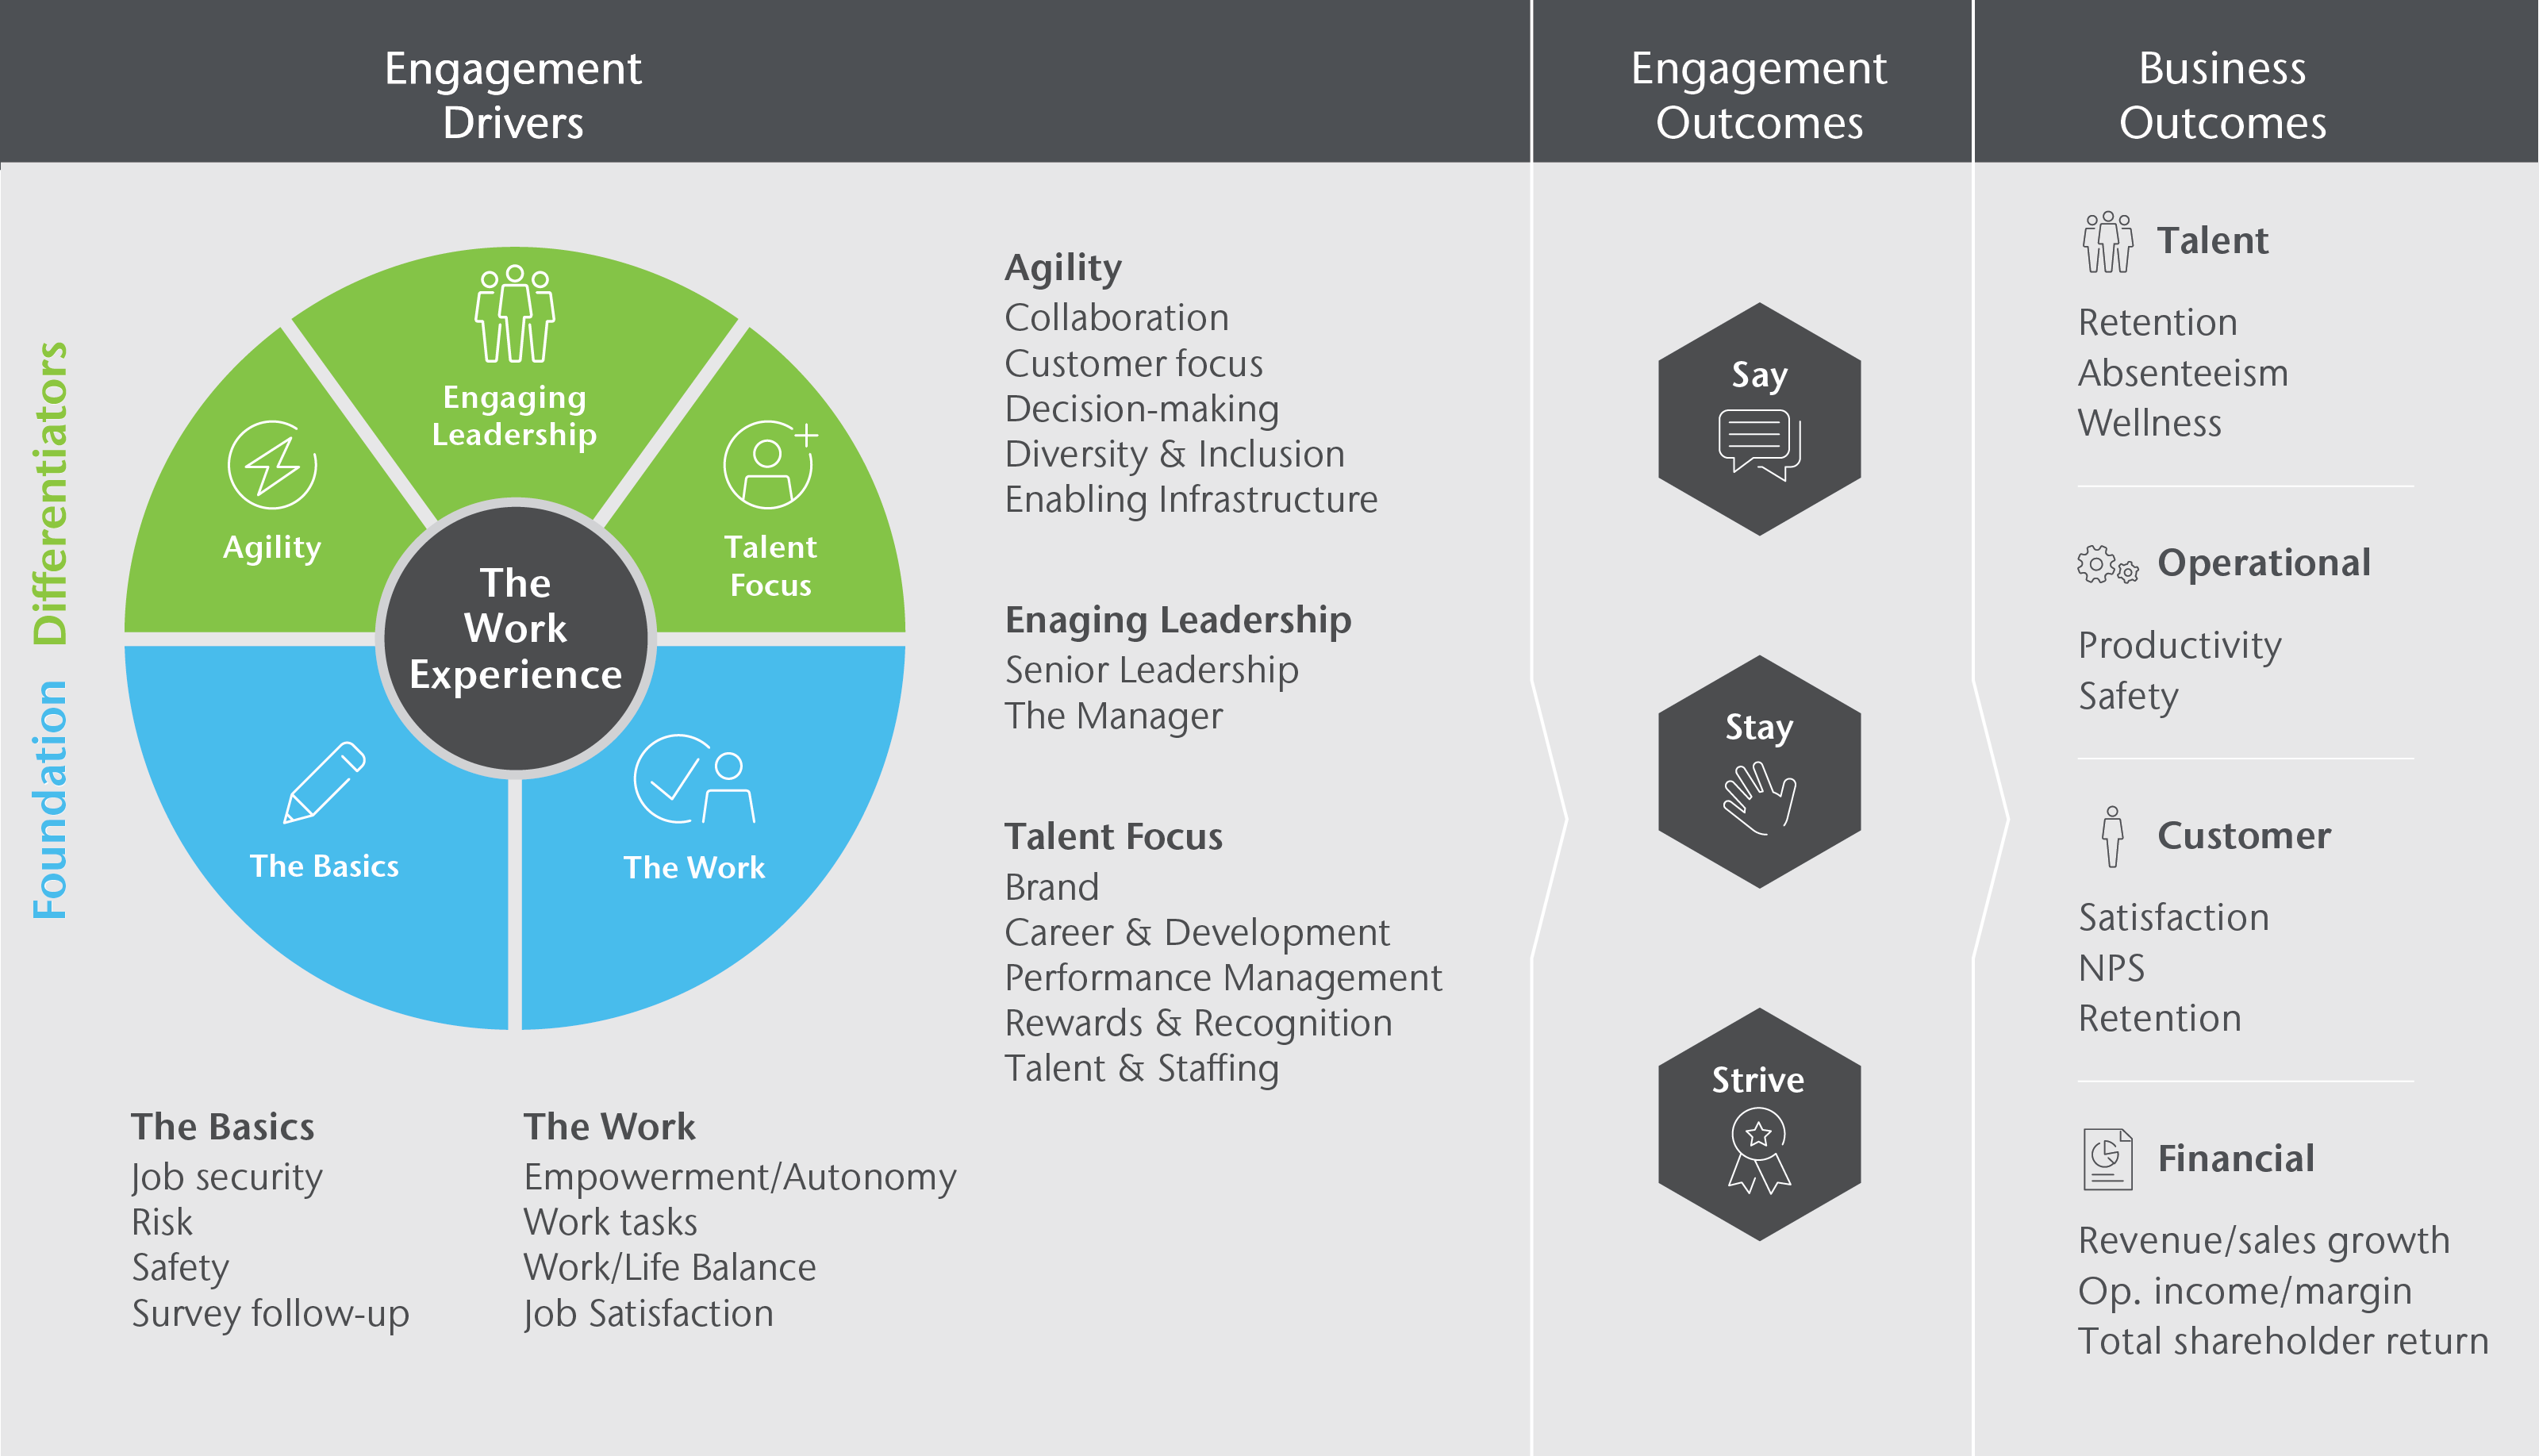 Aon's Employee Engagement Model